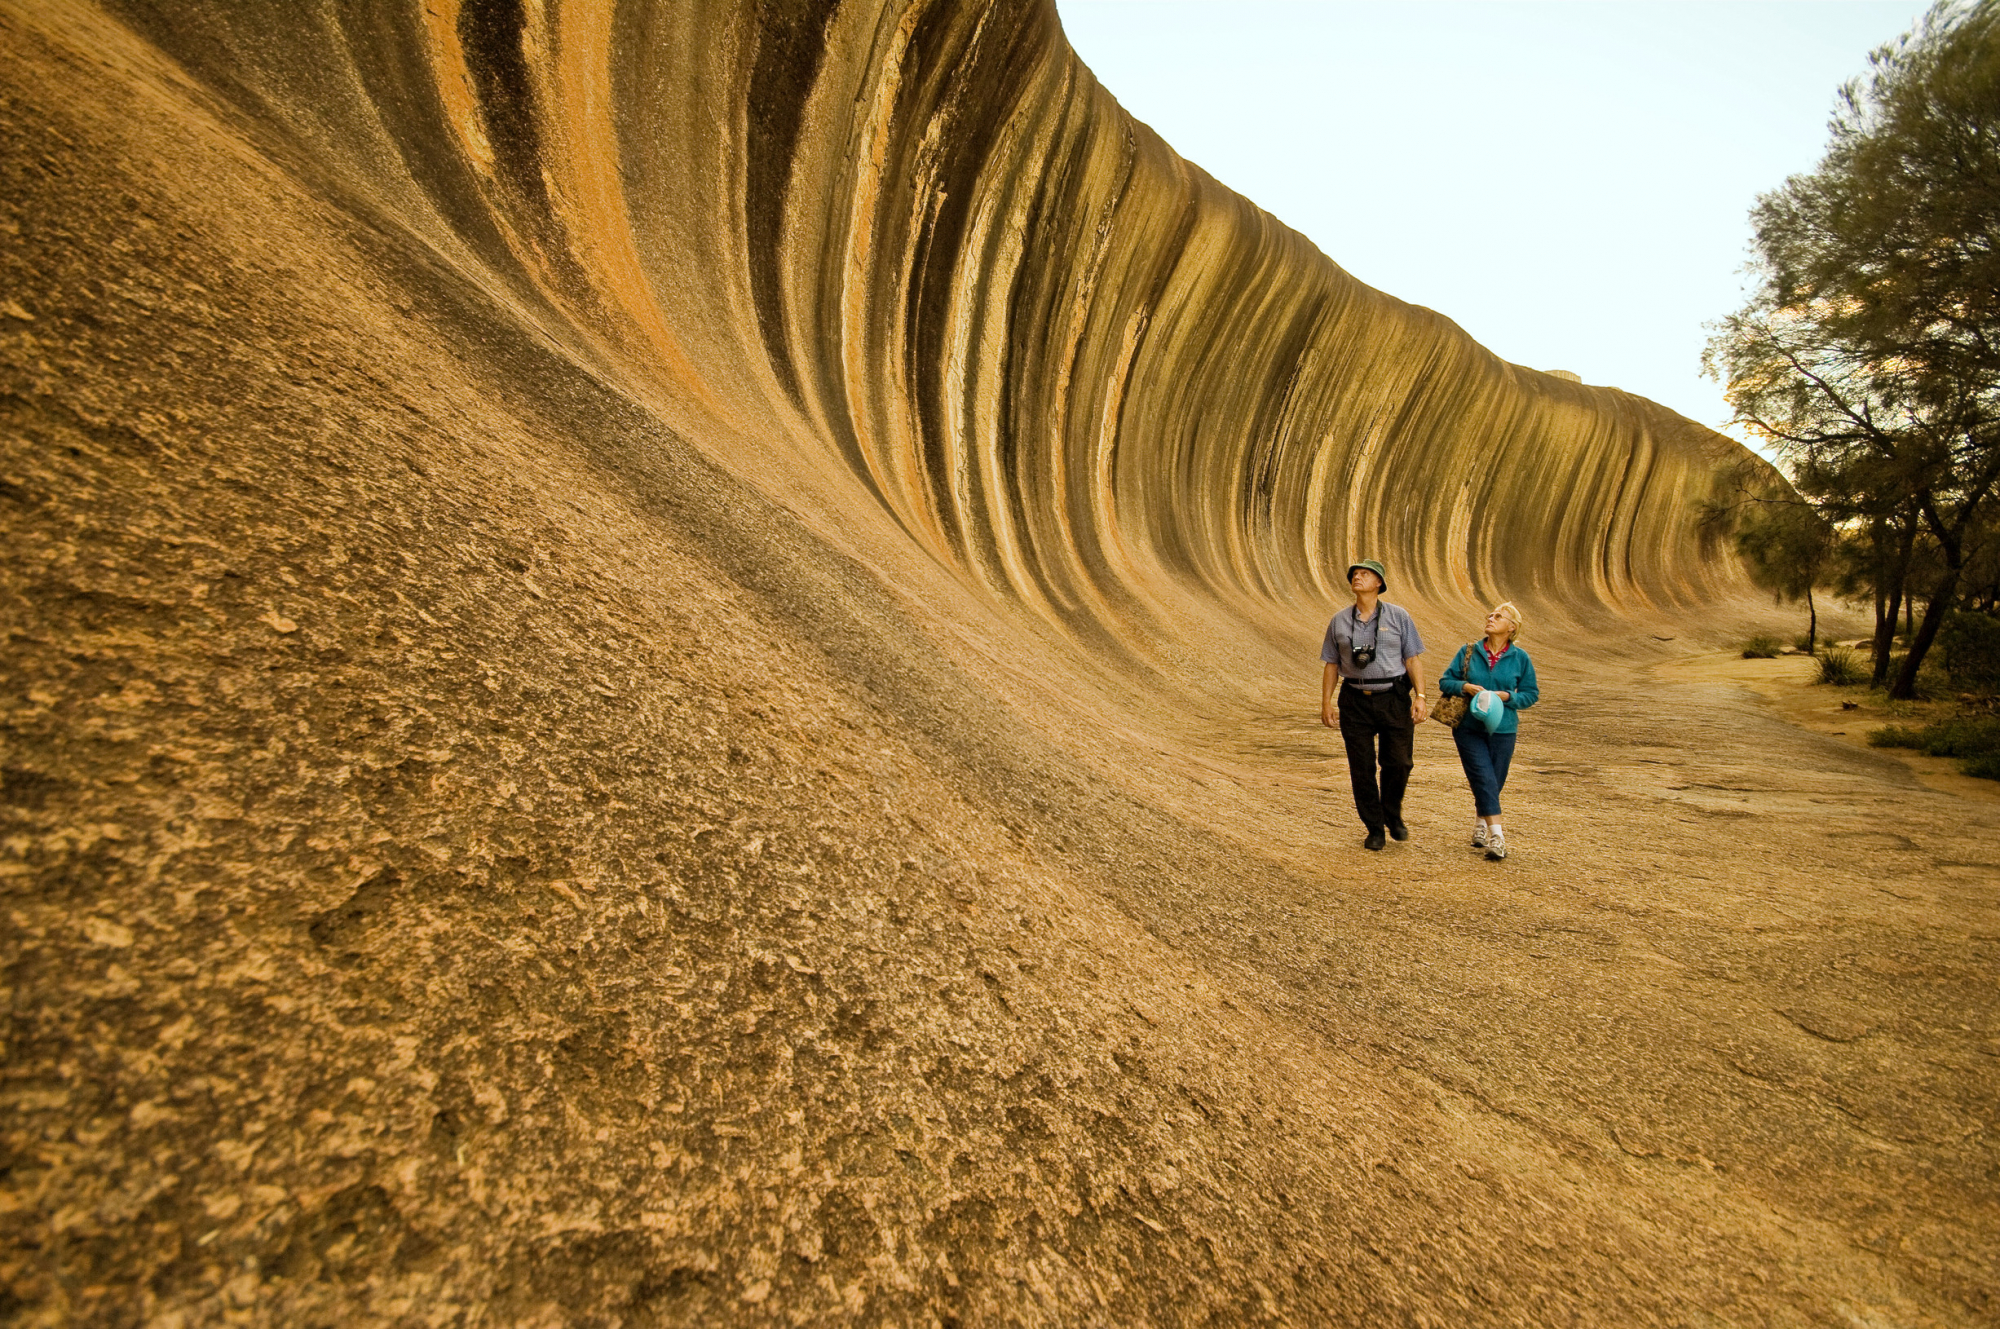 Wave Rock Outback Experience | Wave Rock, Hyden, Australia's Golden Outback, Western Australia